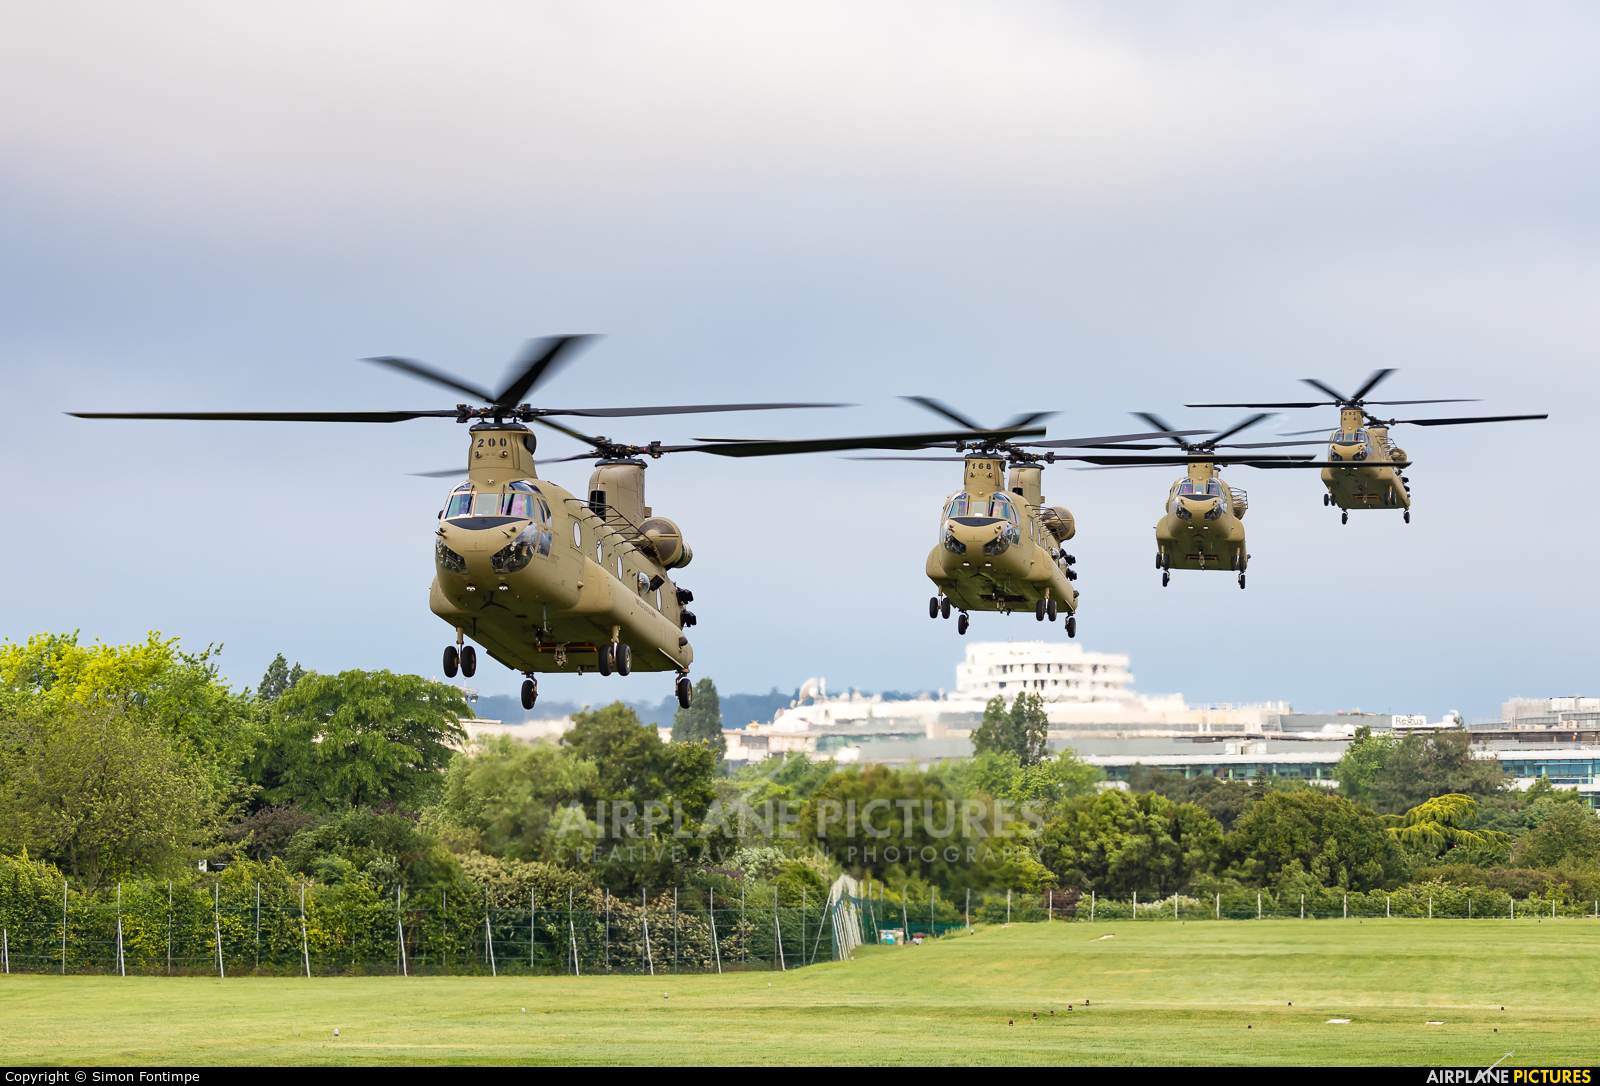 USA - Army 16-08200 aircraft at Issy Les Moulineaux